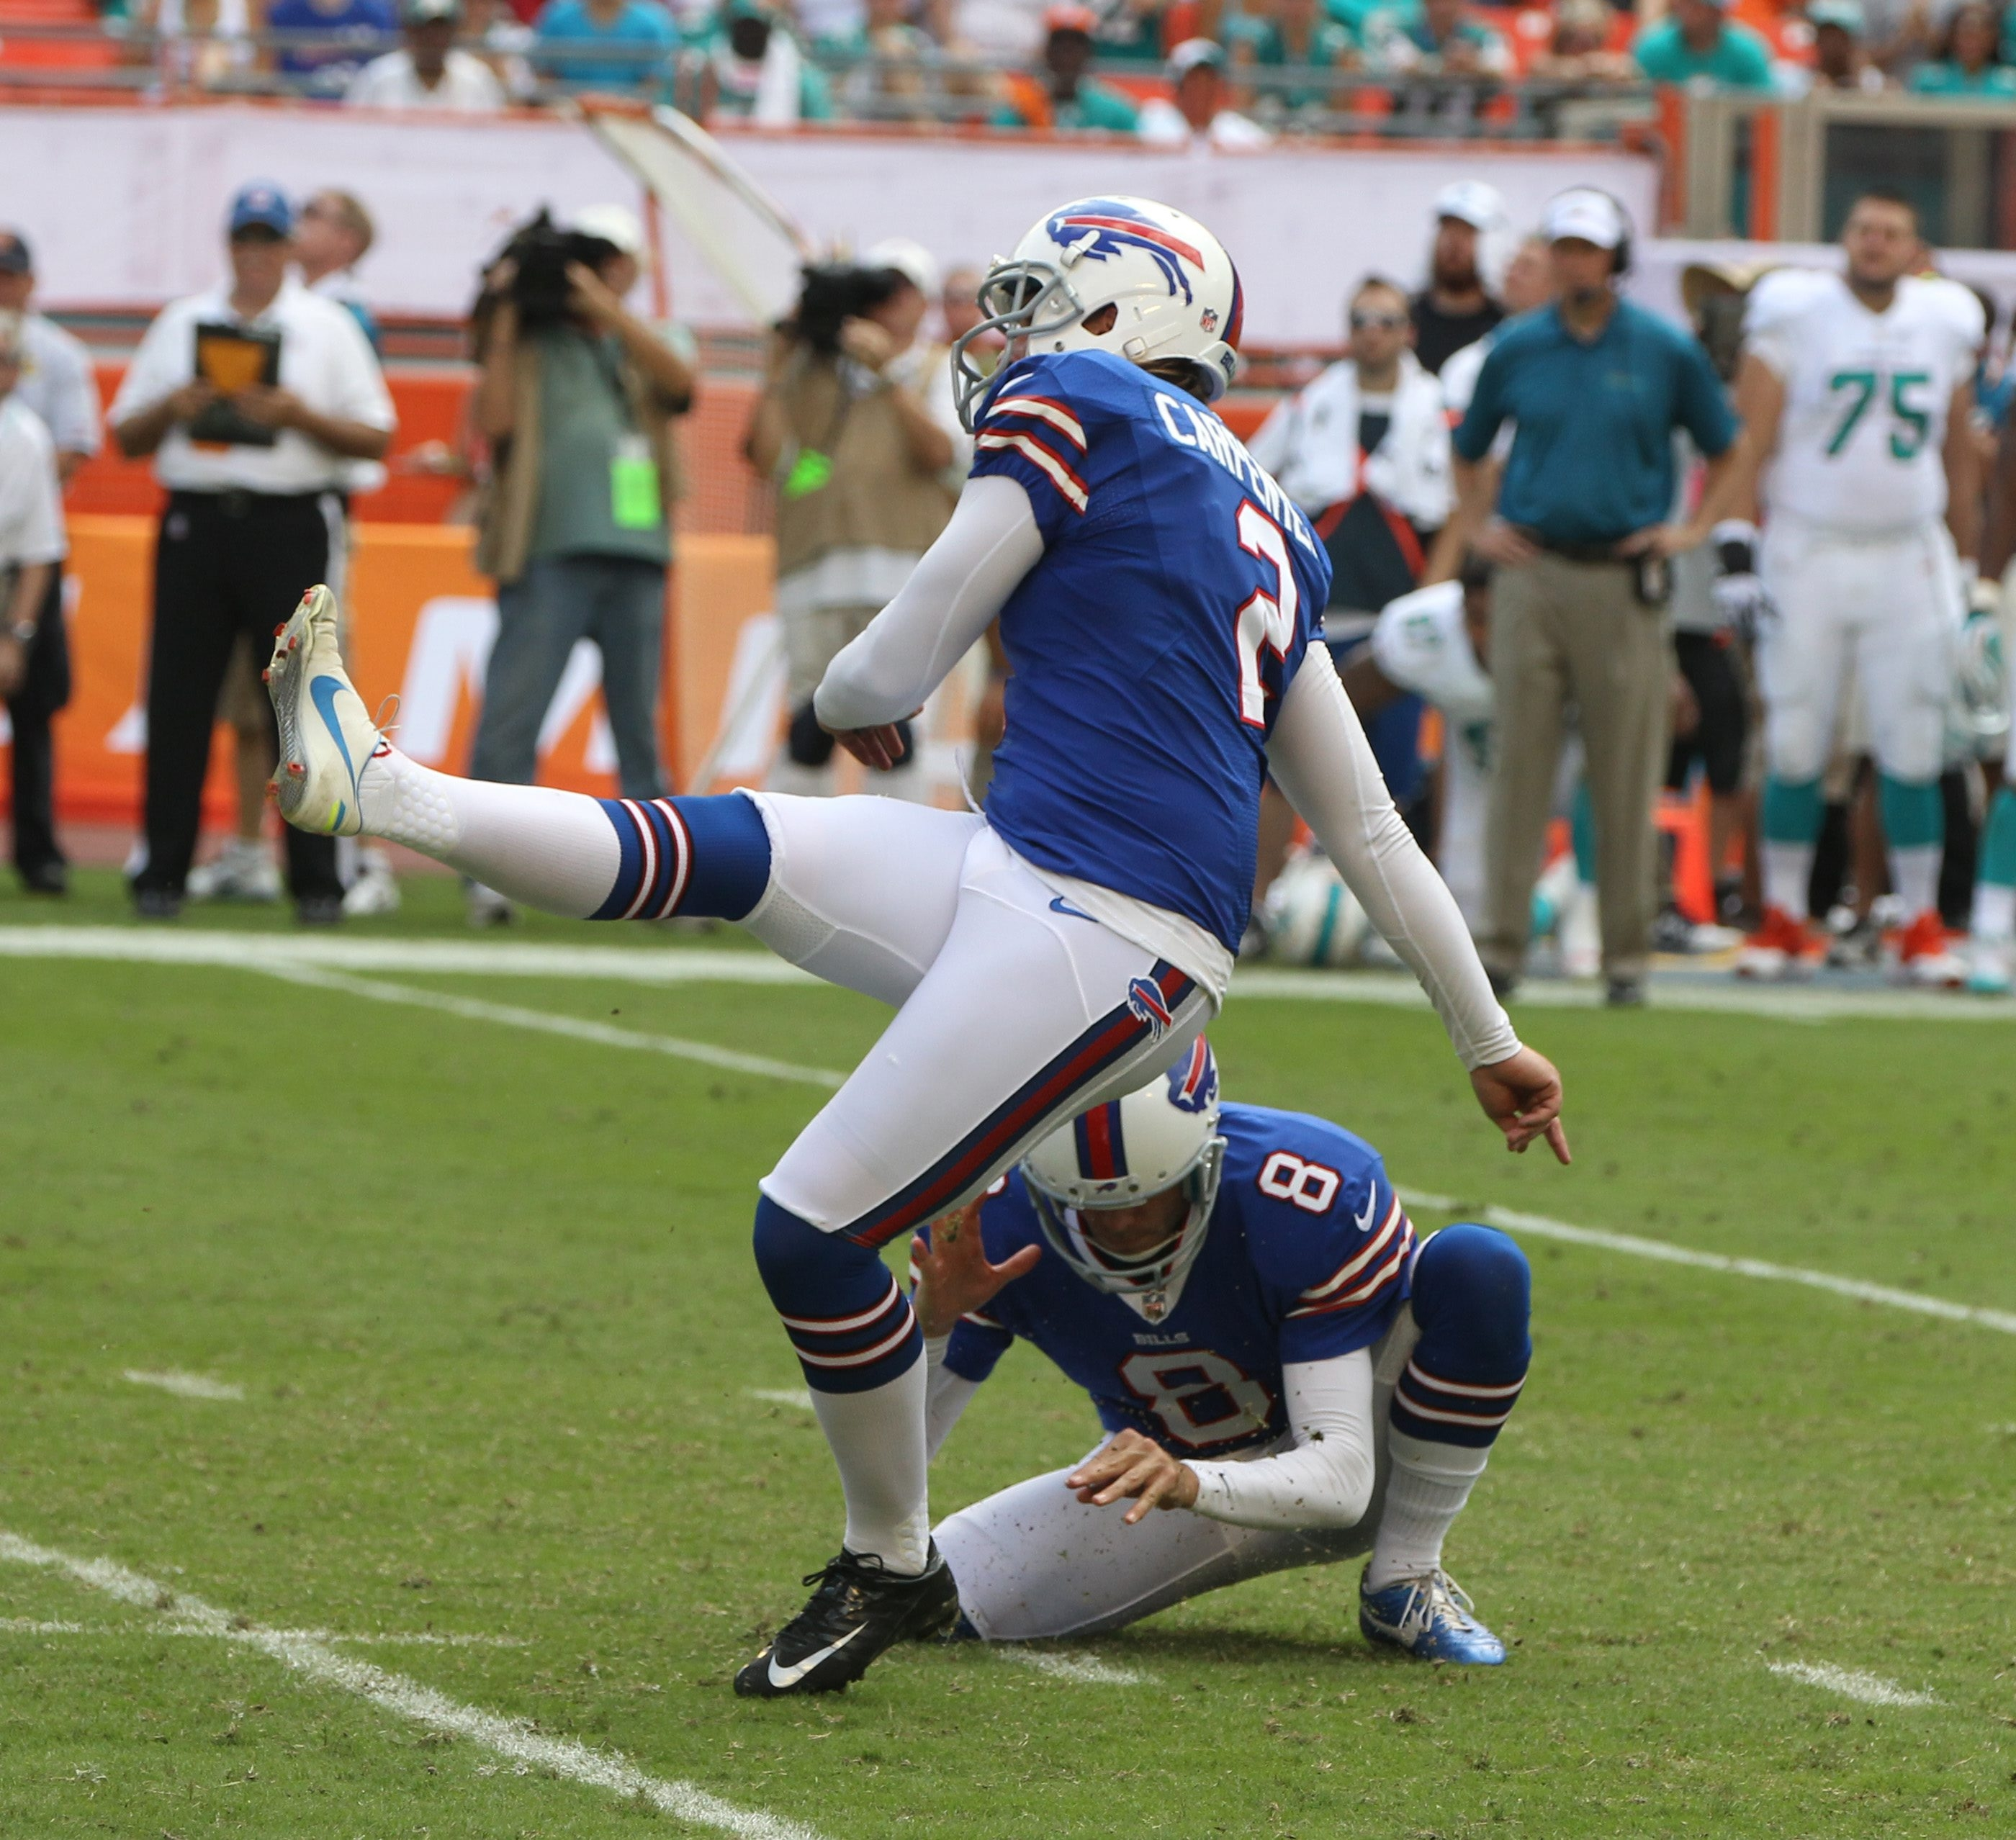 Buffalo Bills kicker Dan Carpenter kicks the game winning field goal in the fourth quarter at Sun Life Stadium.